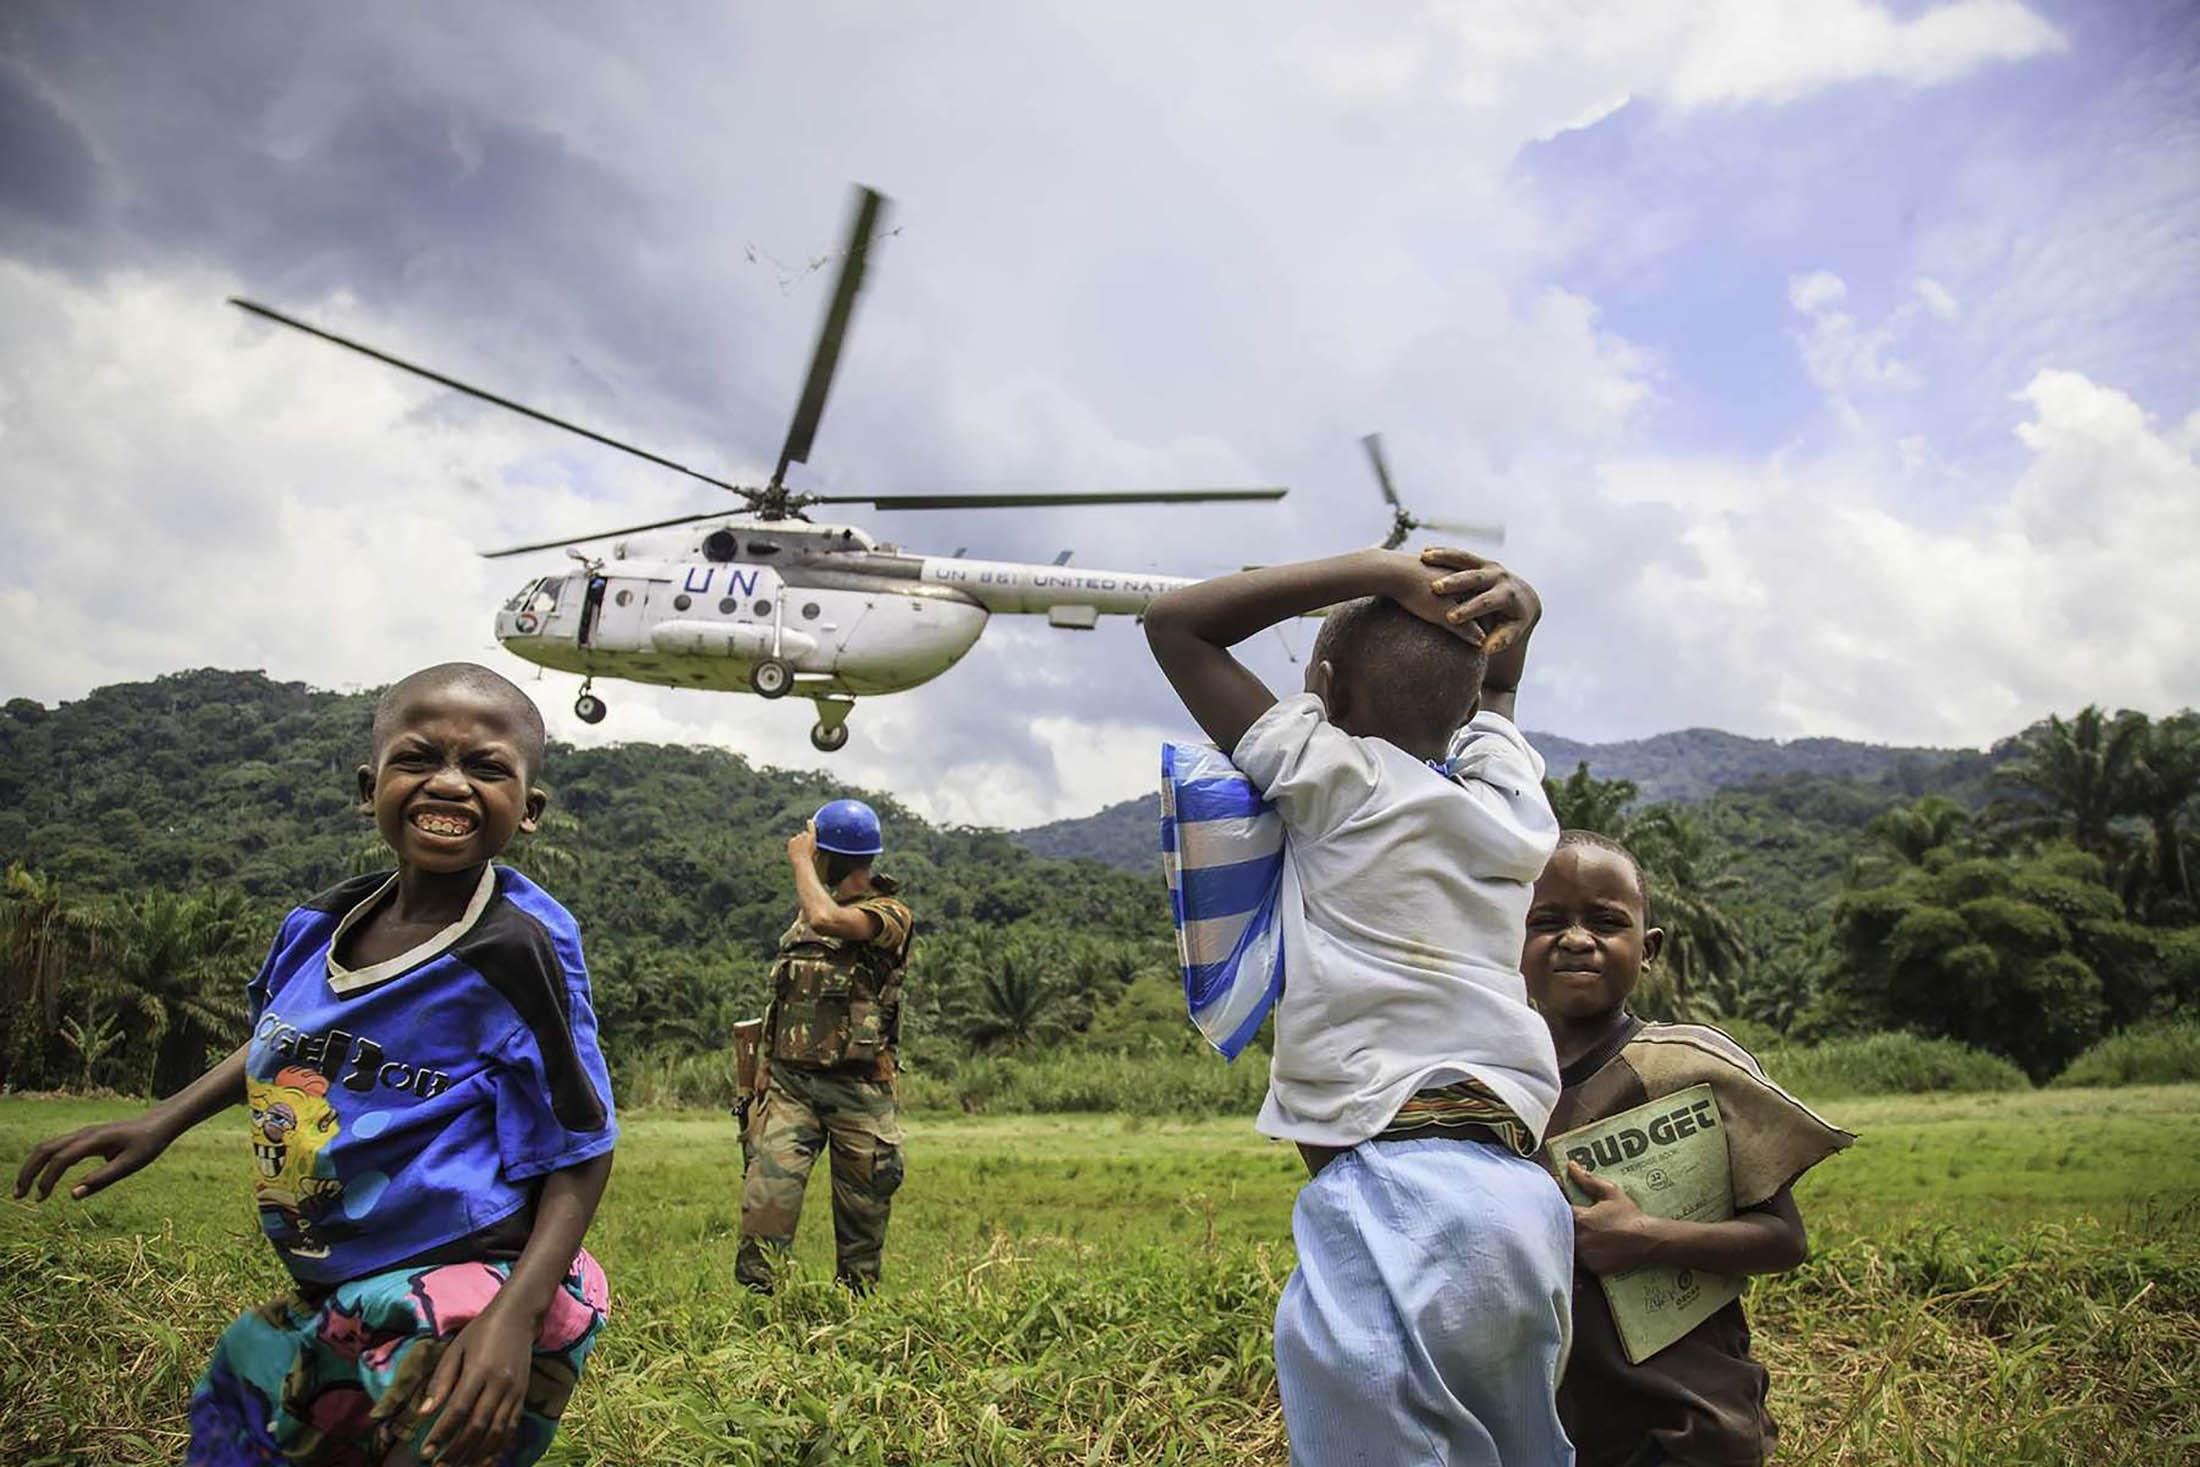 Children look on UN peacekeepers arrive in the area controlled by an armed group in North Kivu, Democratic Republic of Congo.